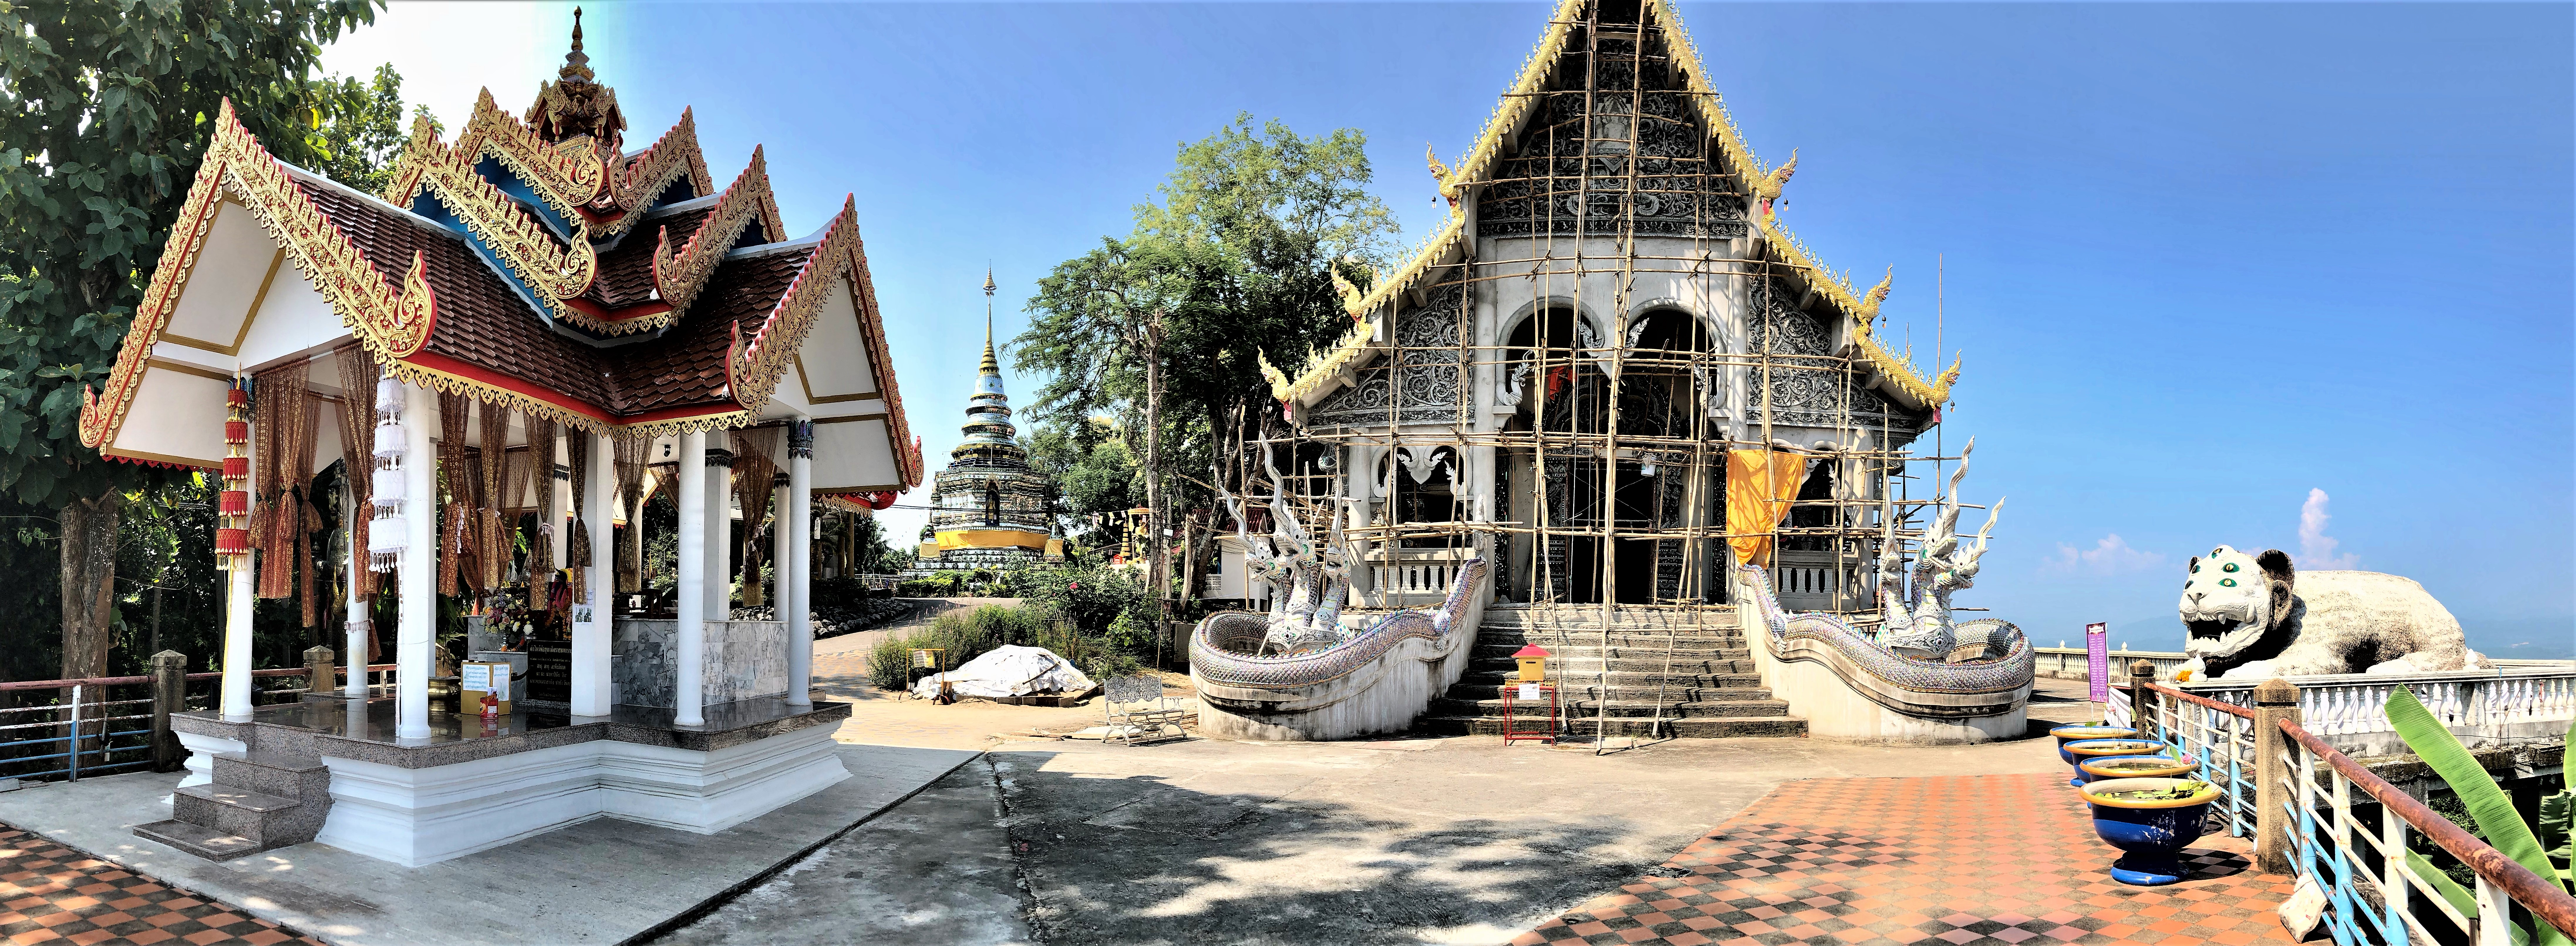 Panoramic photo encompassing the small Kwan Yin temple, the glass stupa of the main temple, the new Sihuhata temple under construction, and the large sculpture of Sihuhata himself, all under a blue sky. Wat Phra That Doi Khao Kwai, Chiang Rai.